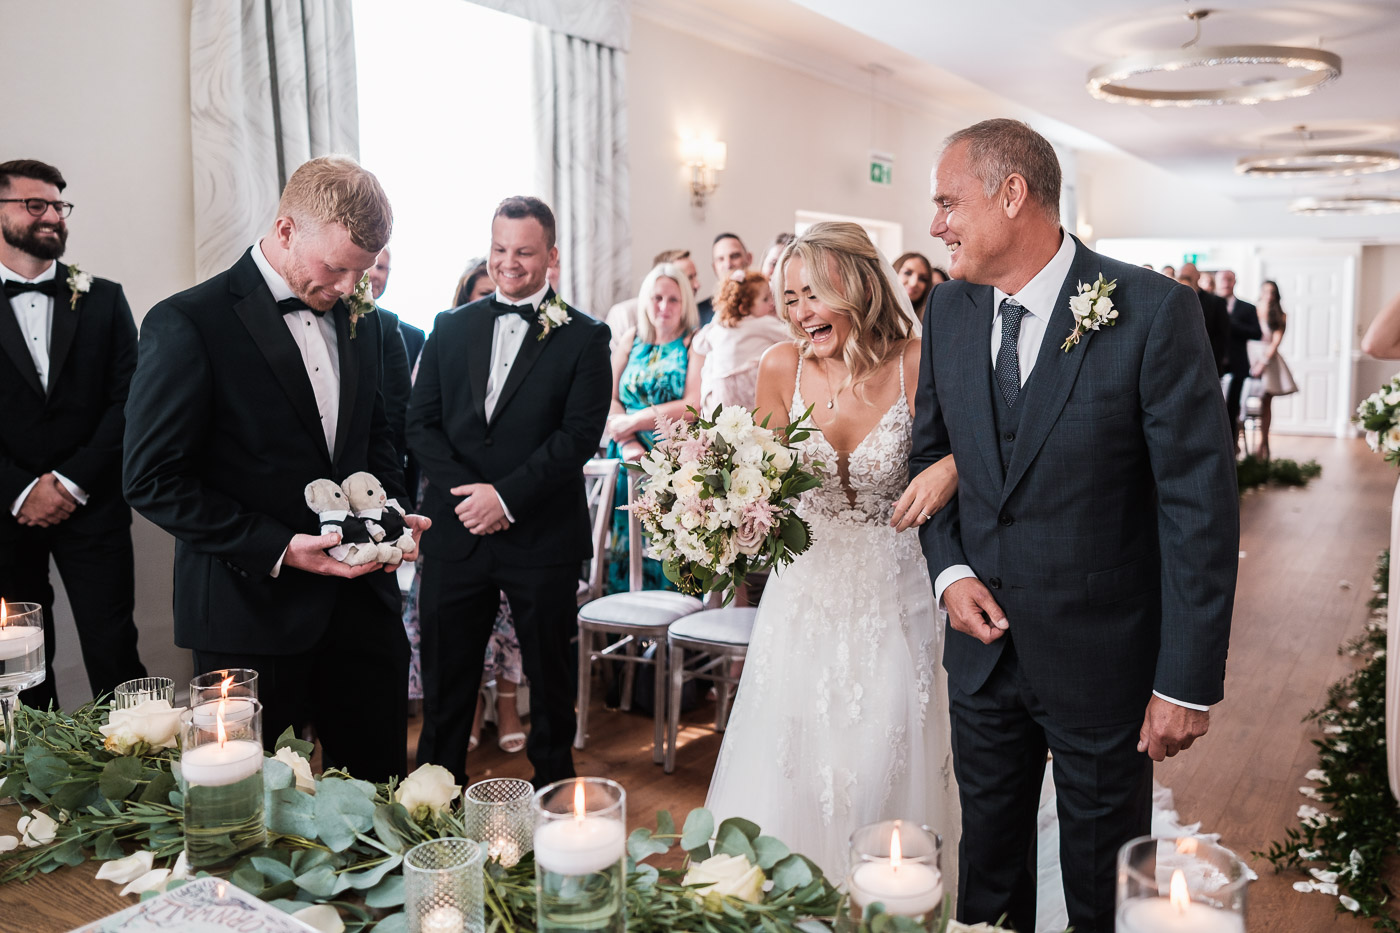 groom presents teddies to the bride at their old palace Chester ceremony